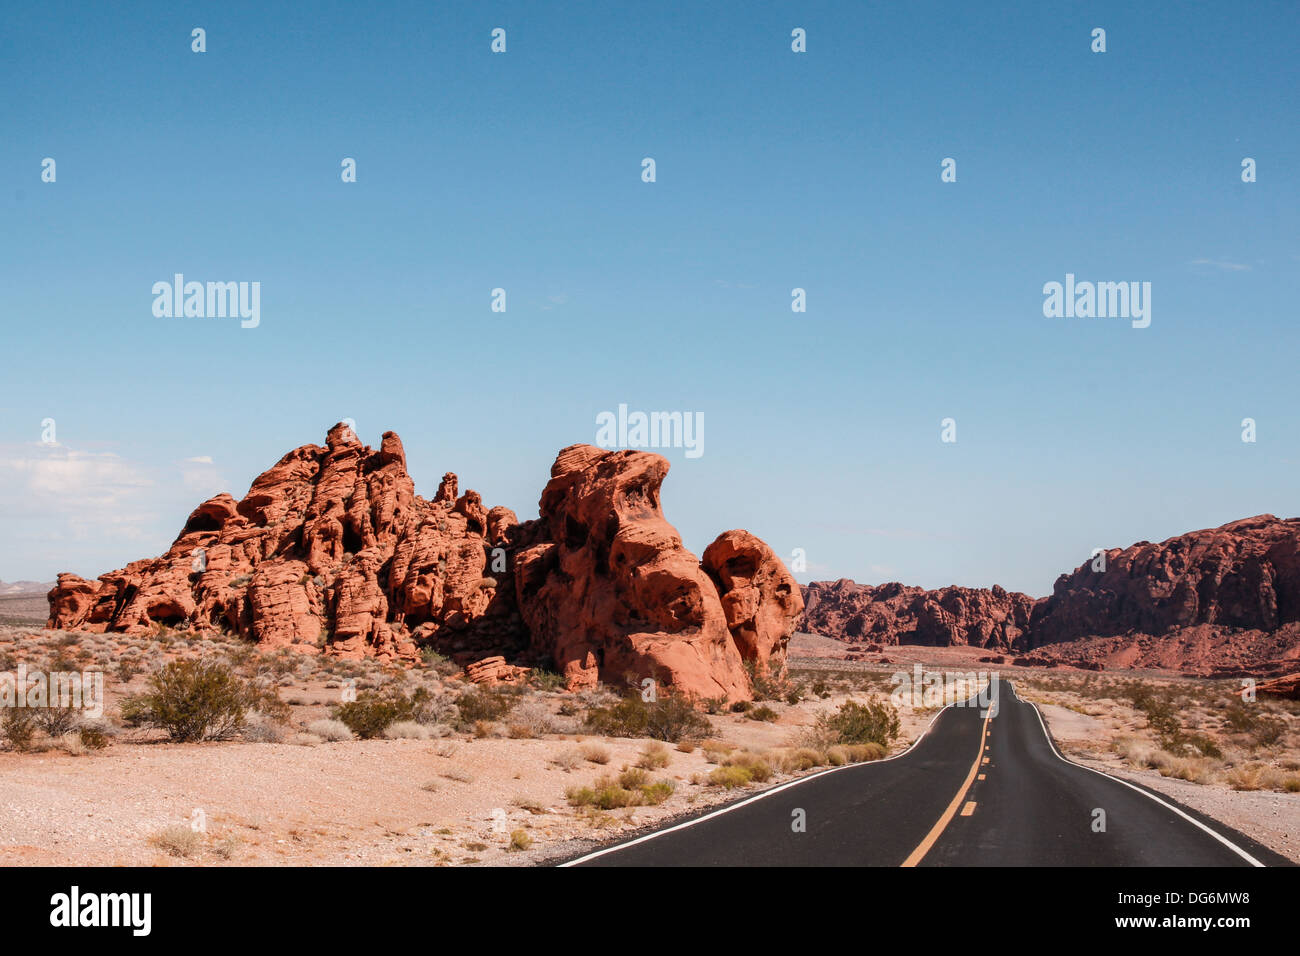 A desert road along a red rock - Valley of Fire, Nevada. - Stock Image